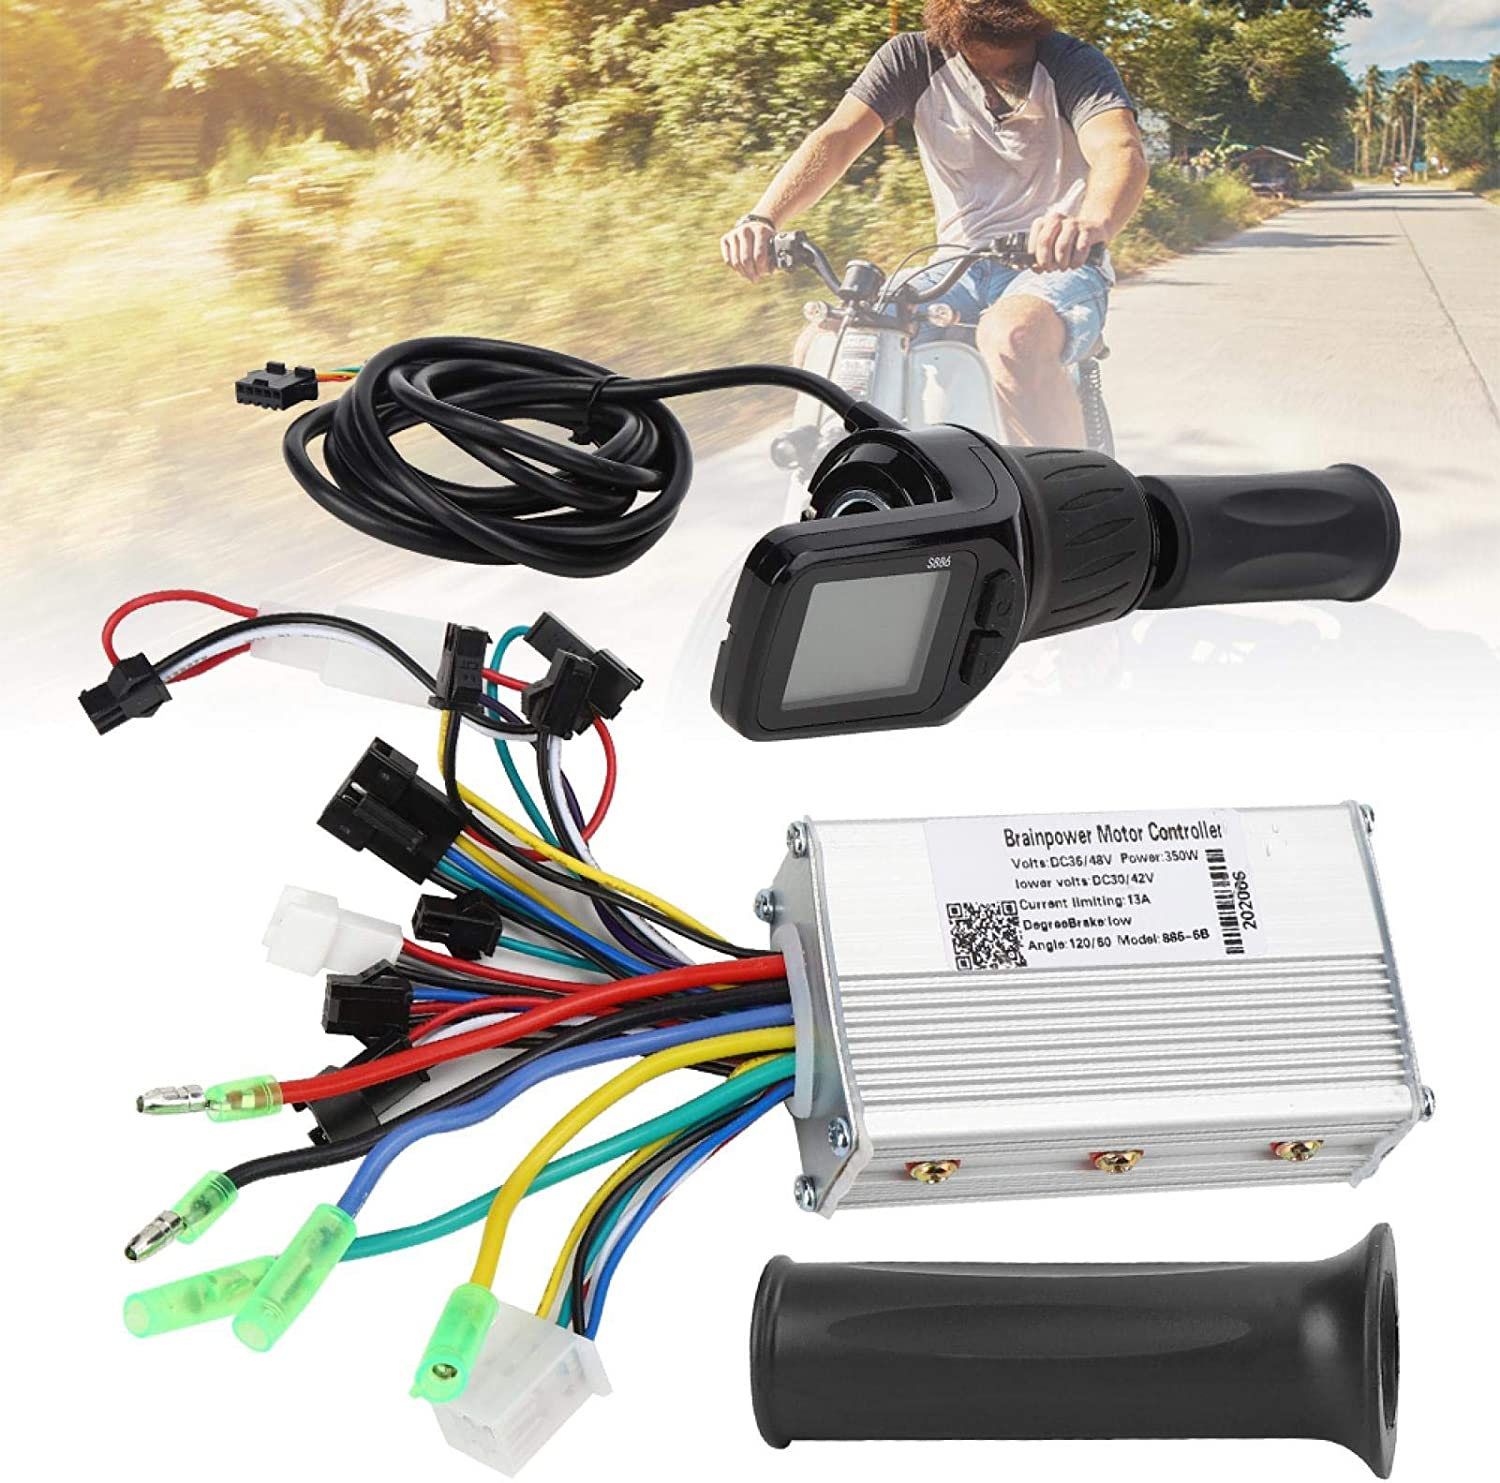 VINGVO 100% quality warranty! 36 48V Electric Bicycle Scooter Shipping included Set Controller